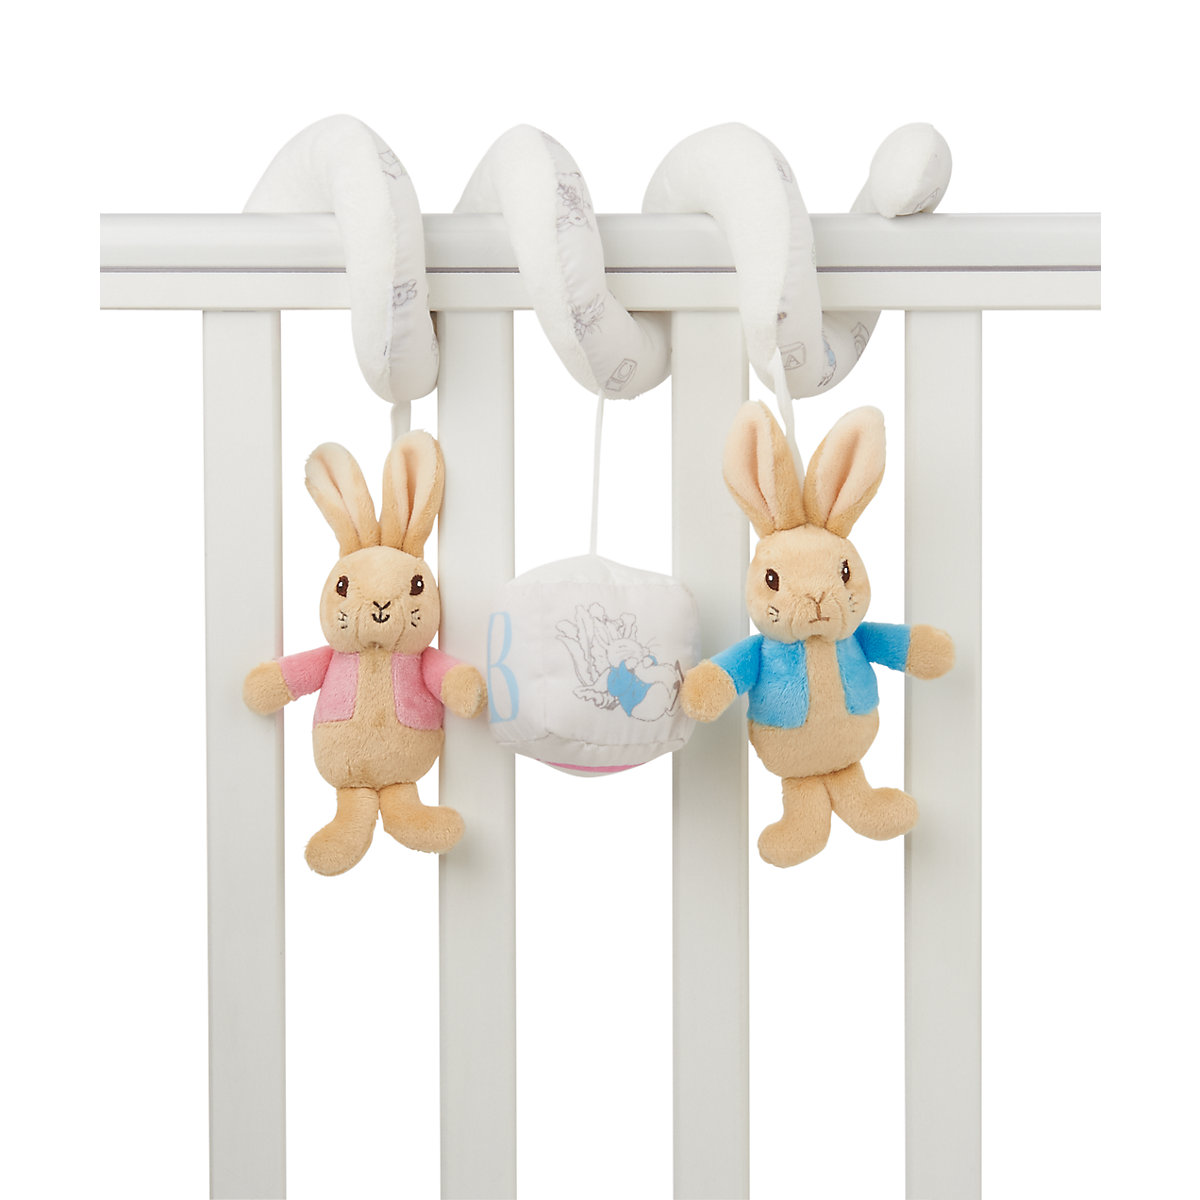 New ELC Beatrix Potter Peter Rabbit Cot Spiral Toy - Beatrix Potter Gifts